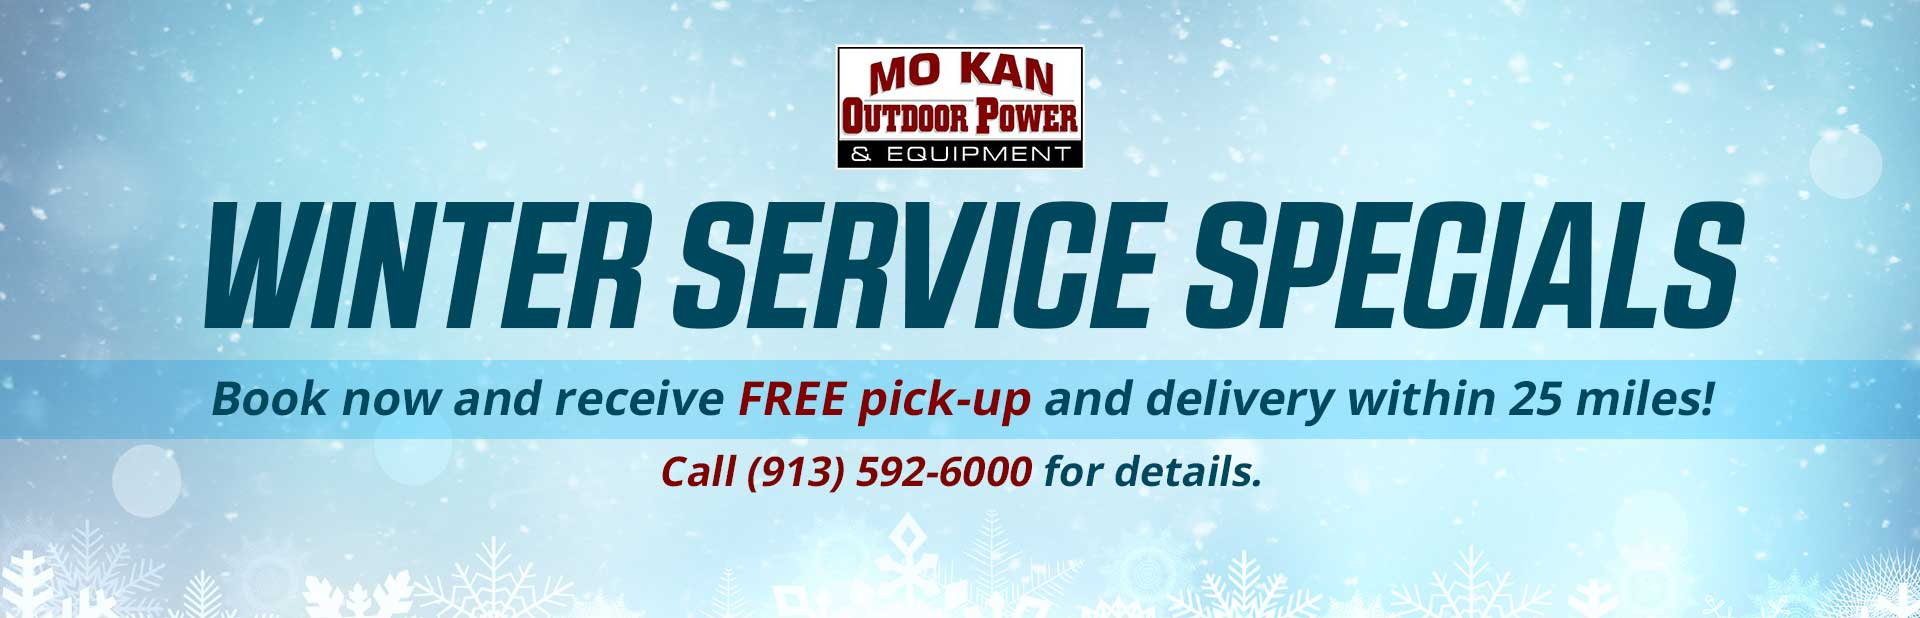 Winter Service Specials: Book now and receive FREE pick-up and delivery within 25 miles! Call (913) 592-6000 for details.